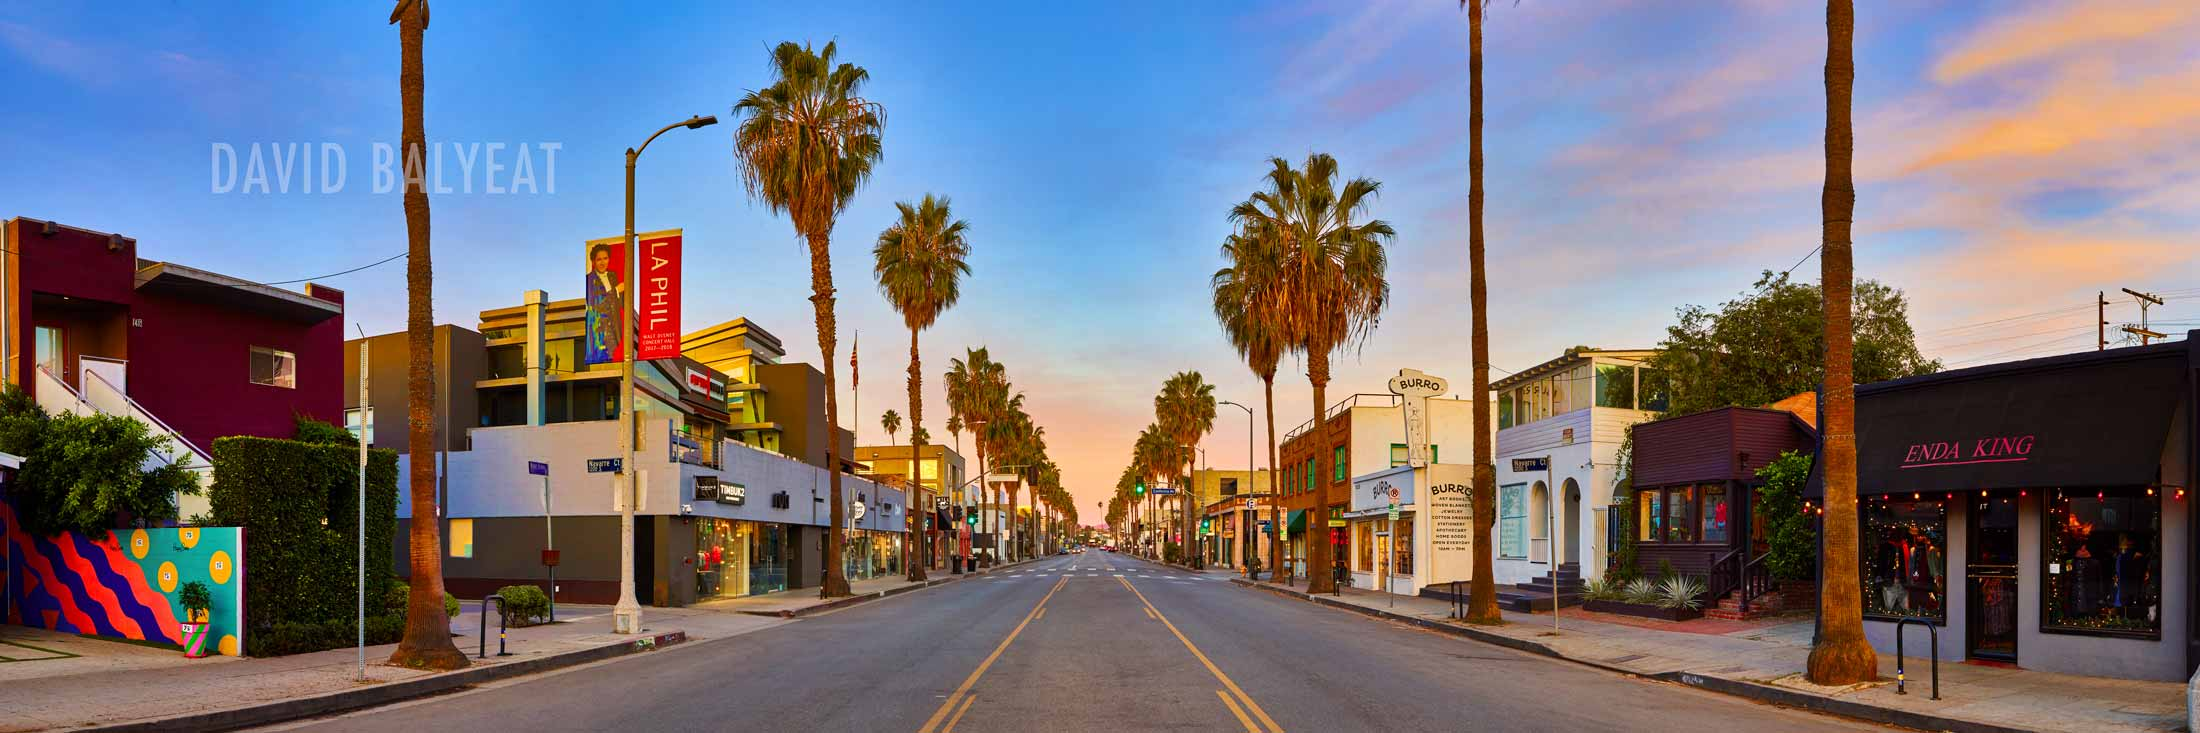 Abbot Kinney Venice Beach California sunrise panoramic professional cityscape photography